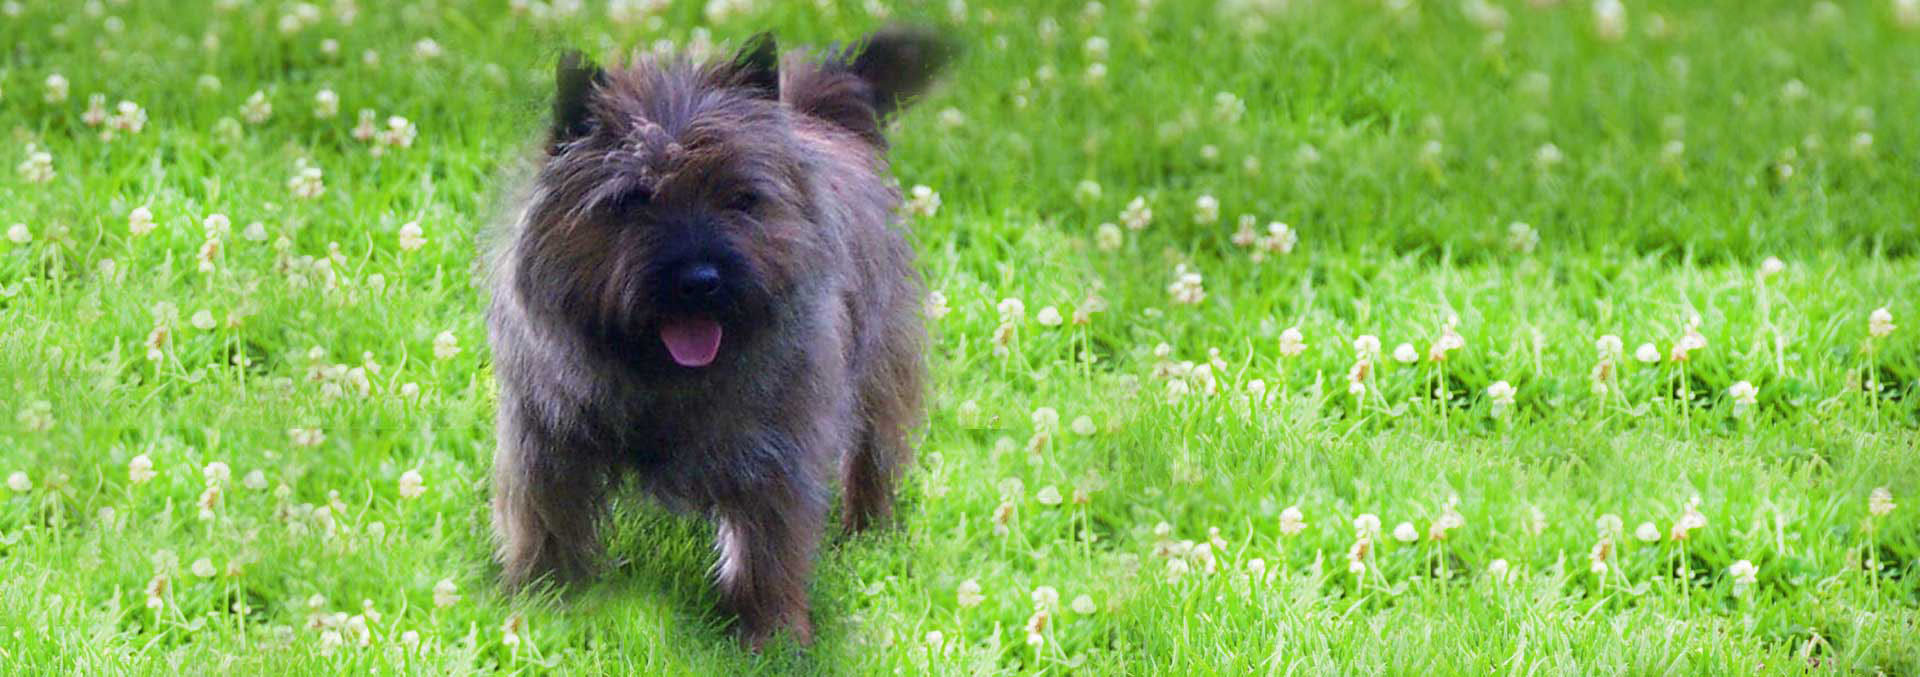 von Hena-C - NH German Shepherd & Cairn Terrier Breeder